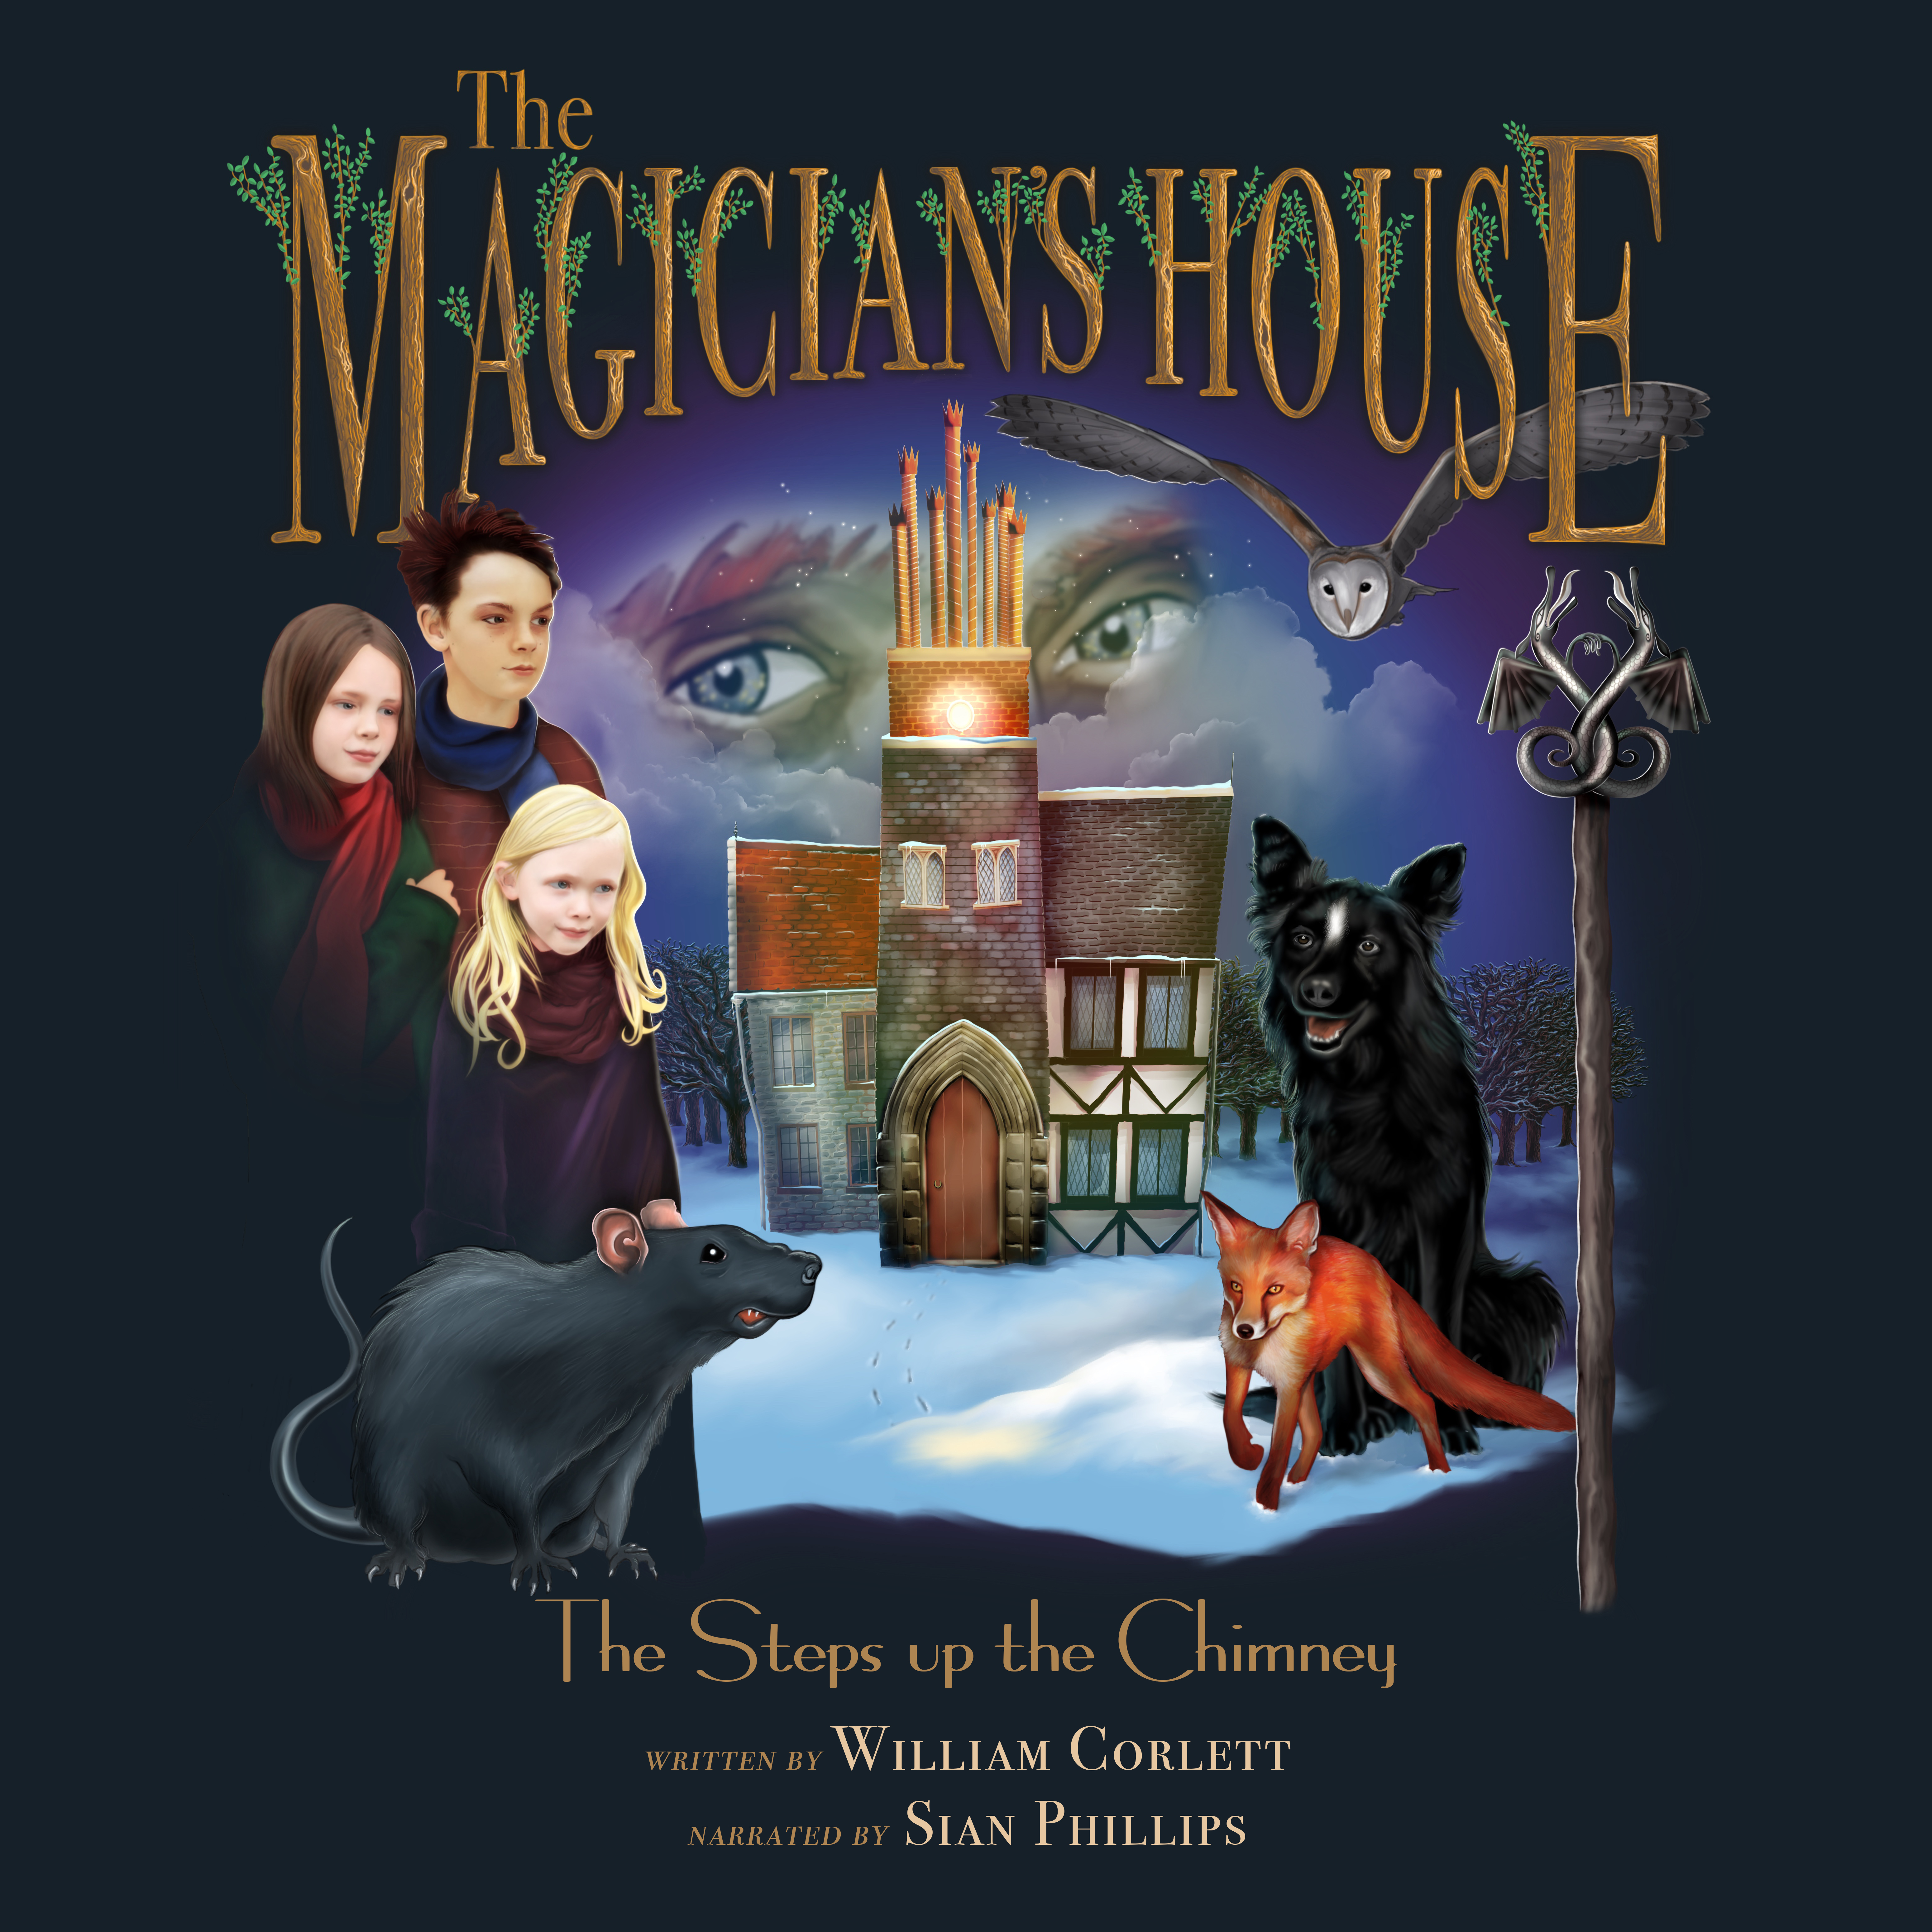 The Magician's House: The Steps Up The Chimney | Audiobook Available Now